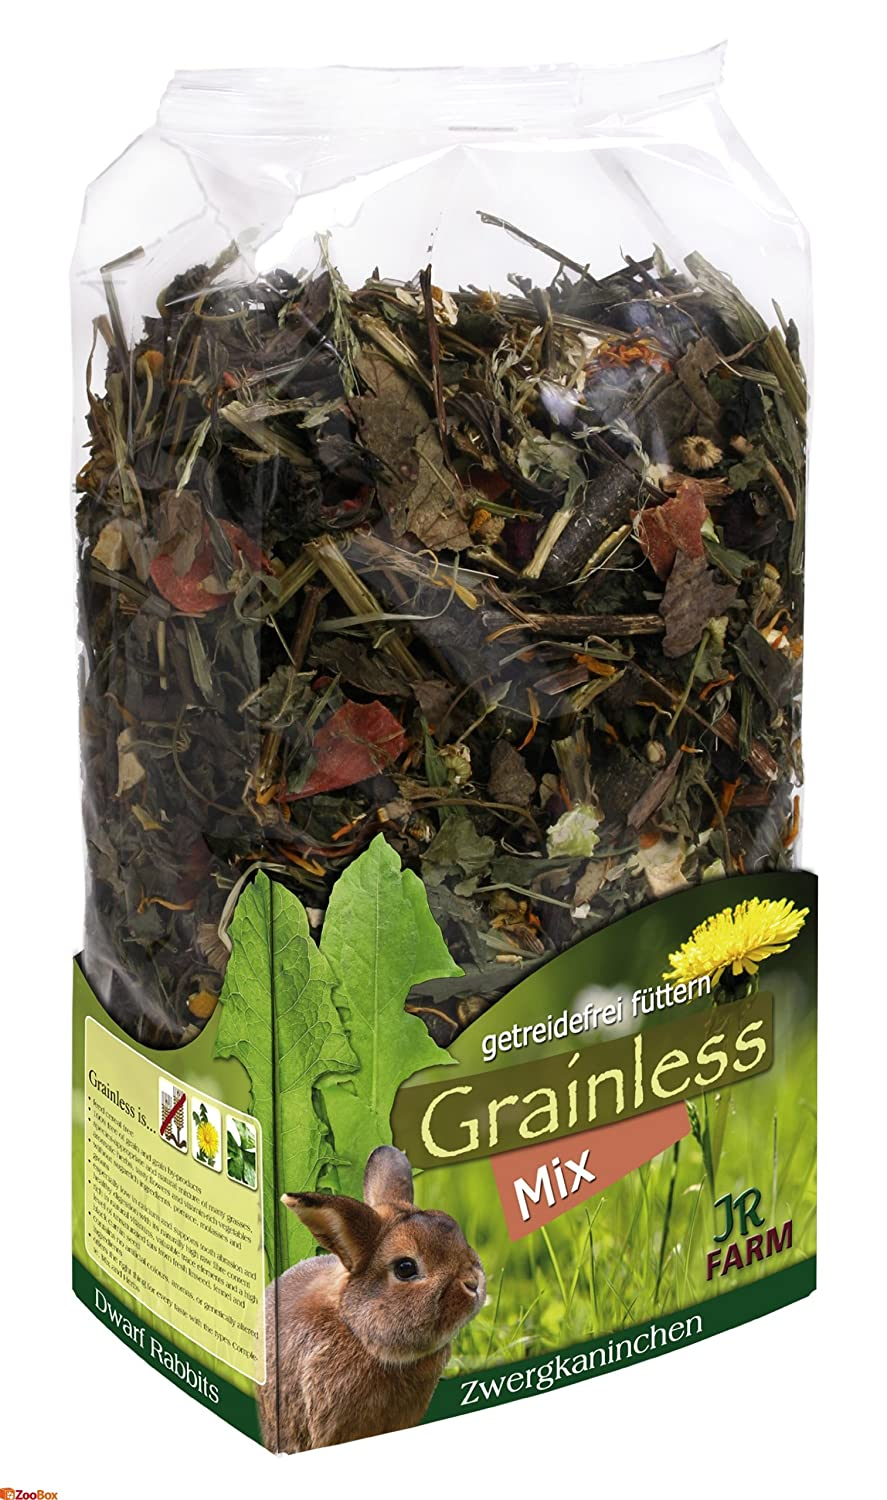 Jr Farm Grainless mix para conejos enanos Jrfarm